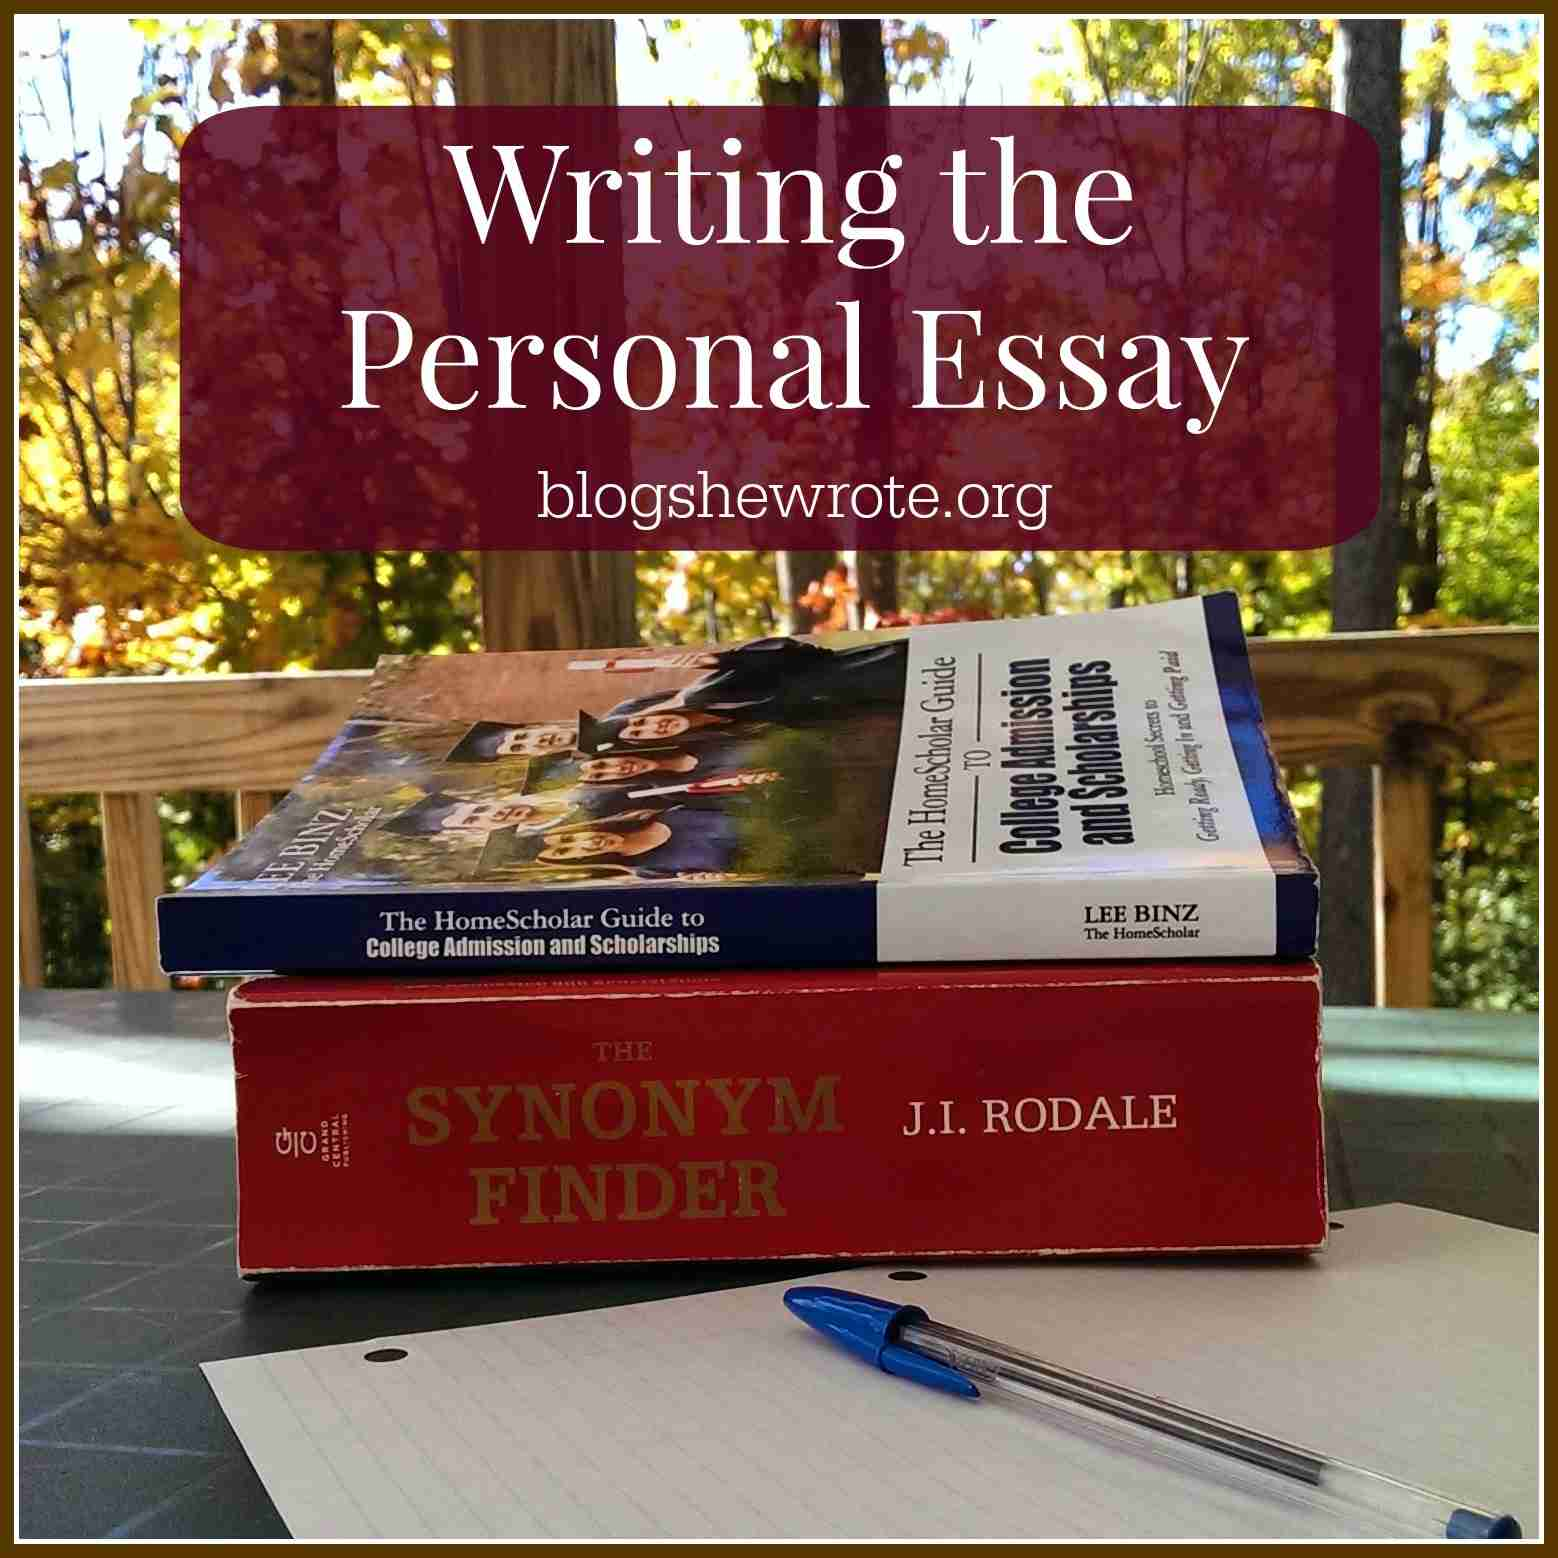 Blog, She Wrote: Writing the Personal Essay